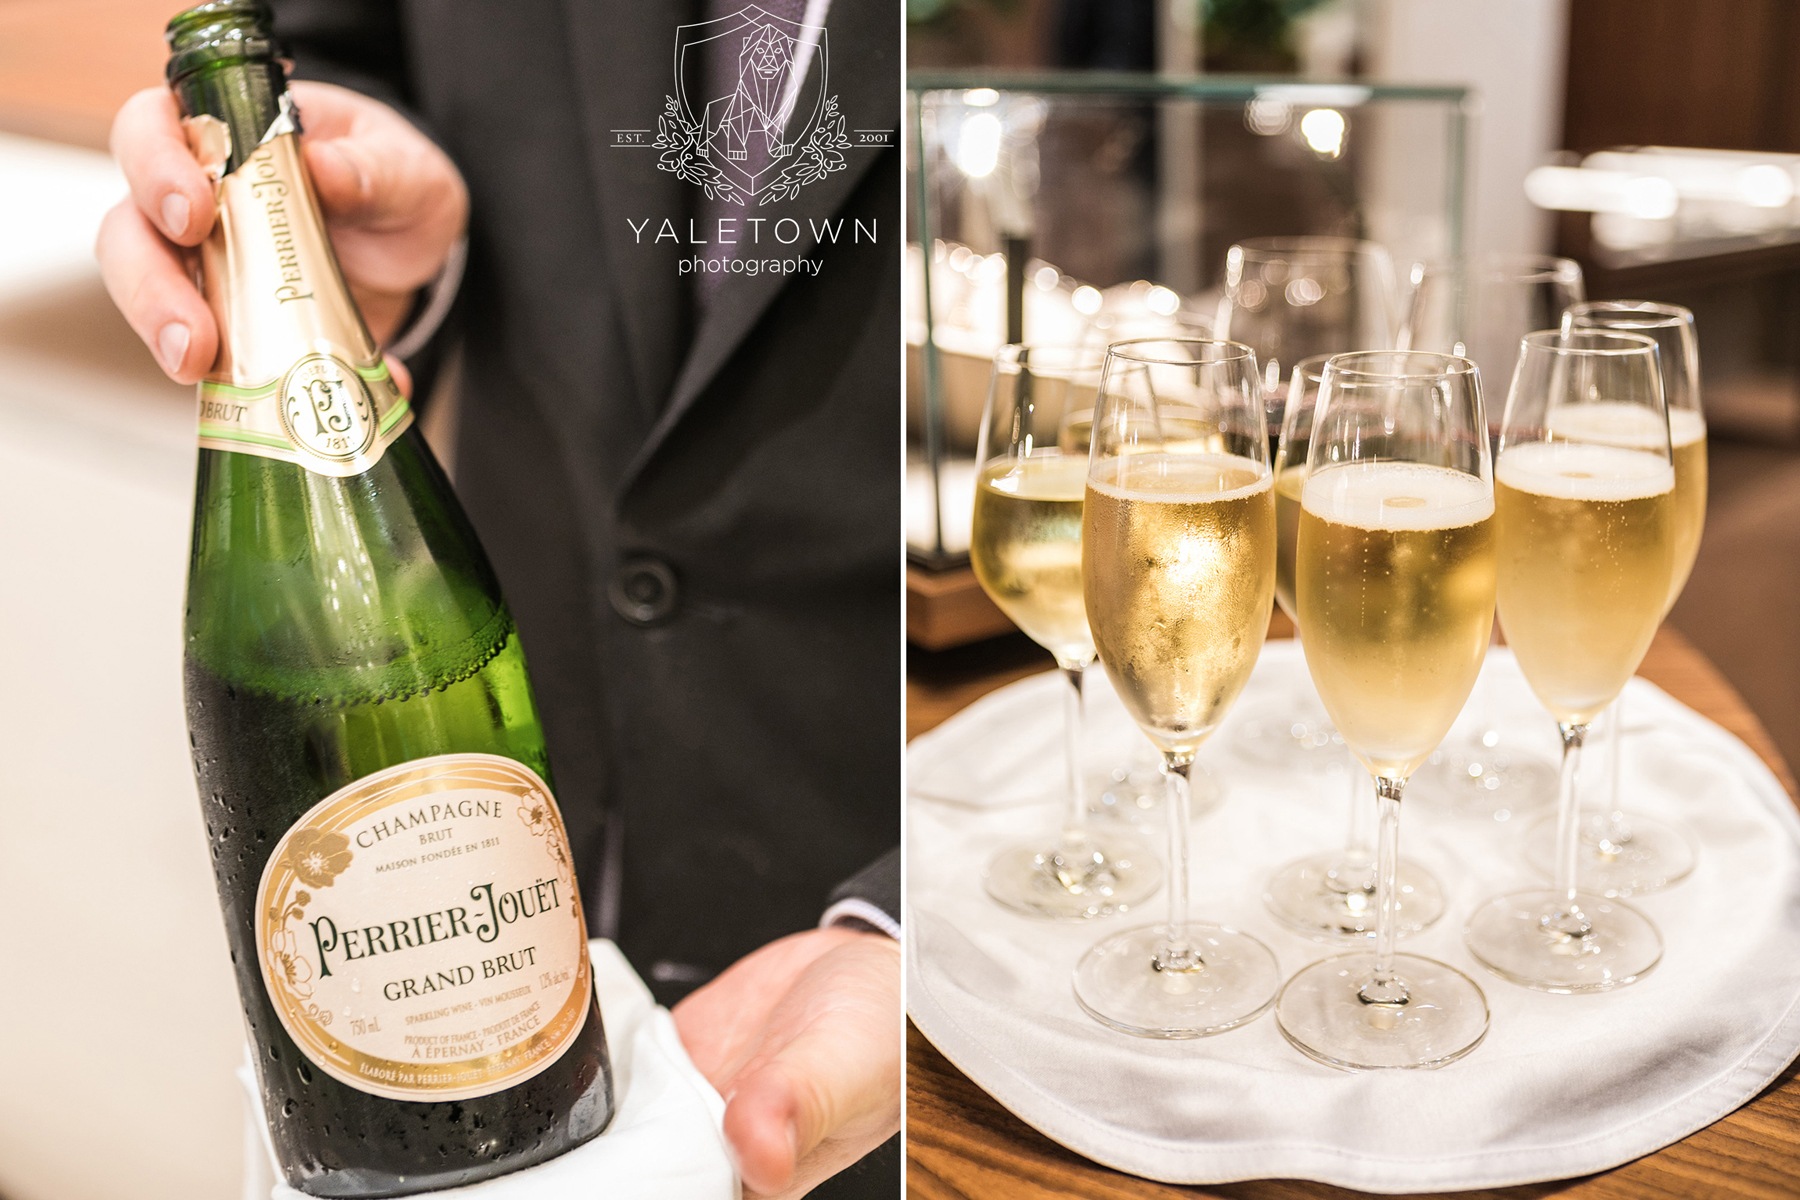 Rolex-Basel-Event-Luxury-Watches-Perrier-Jouët-Grand-Brut-Champagne-Vancouver-Yaletown-Photography-photo